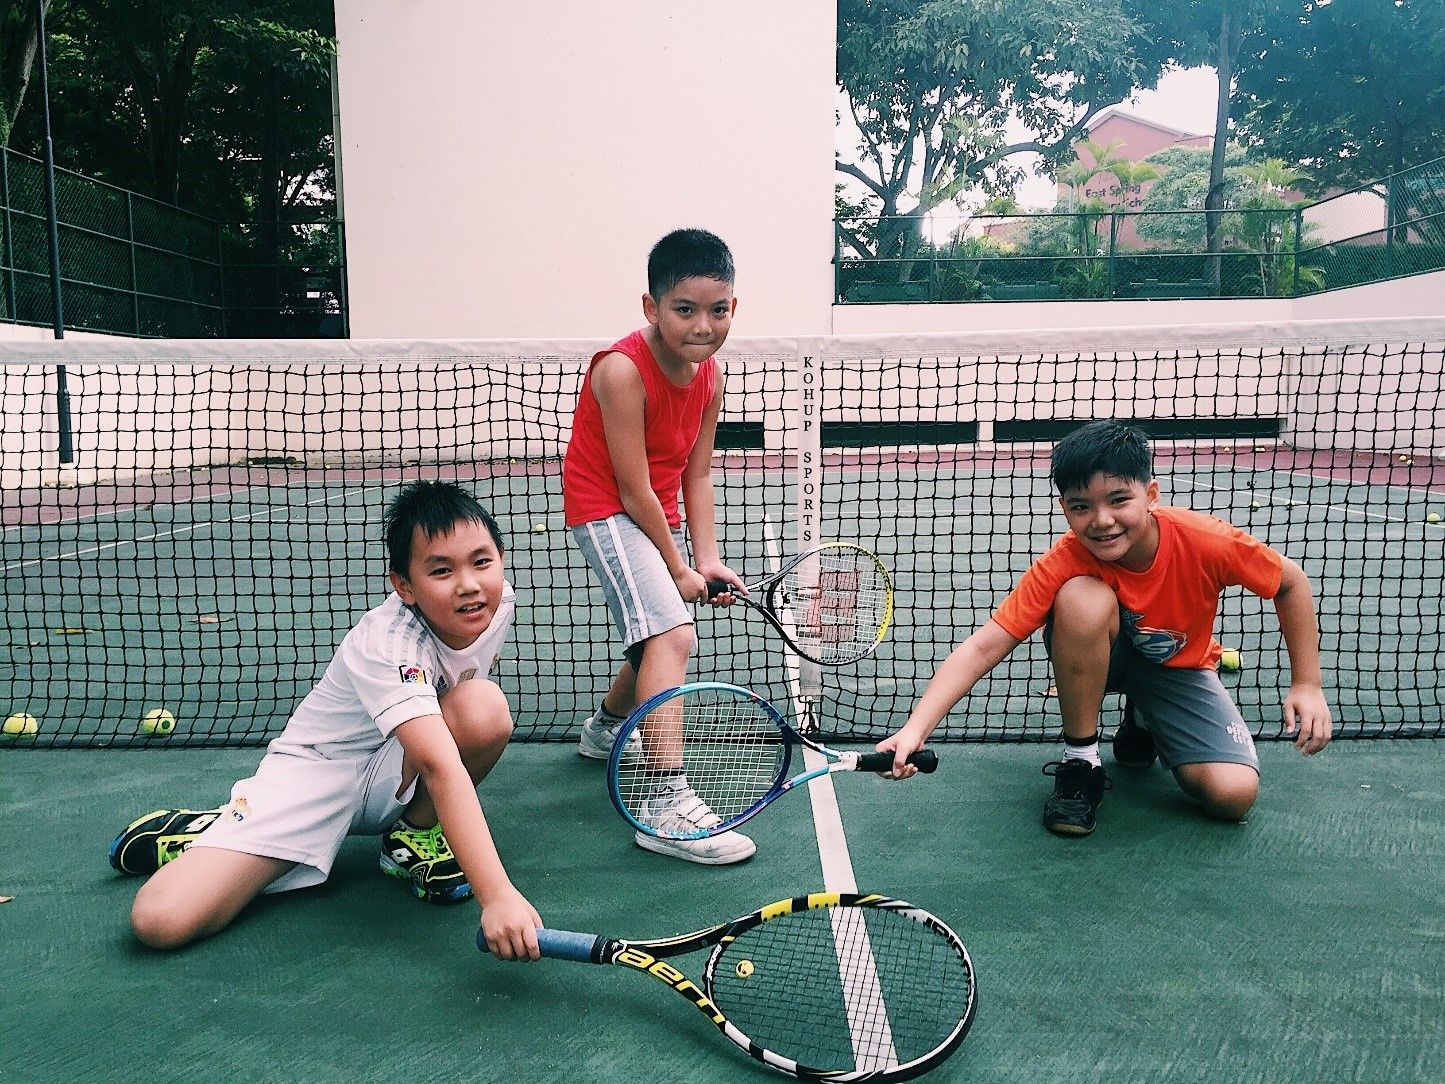 Young tennis players, students of Whipper Tennis Academy